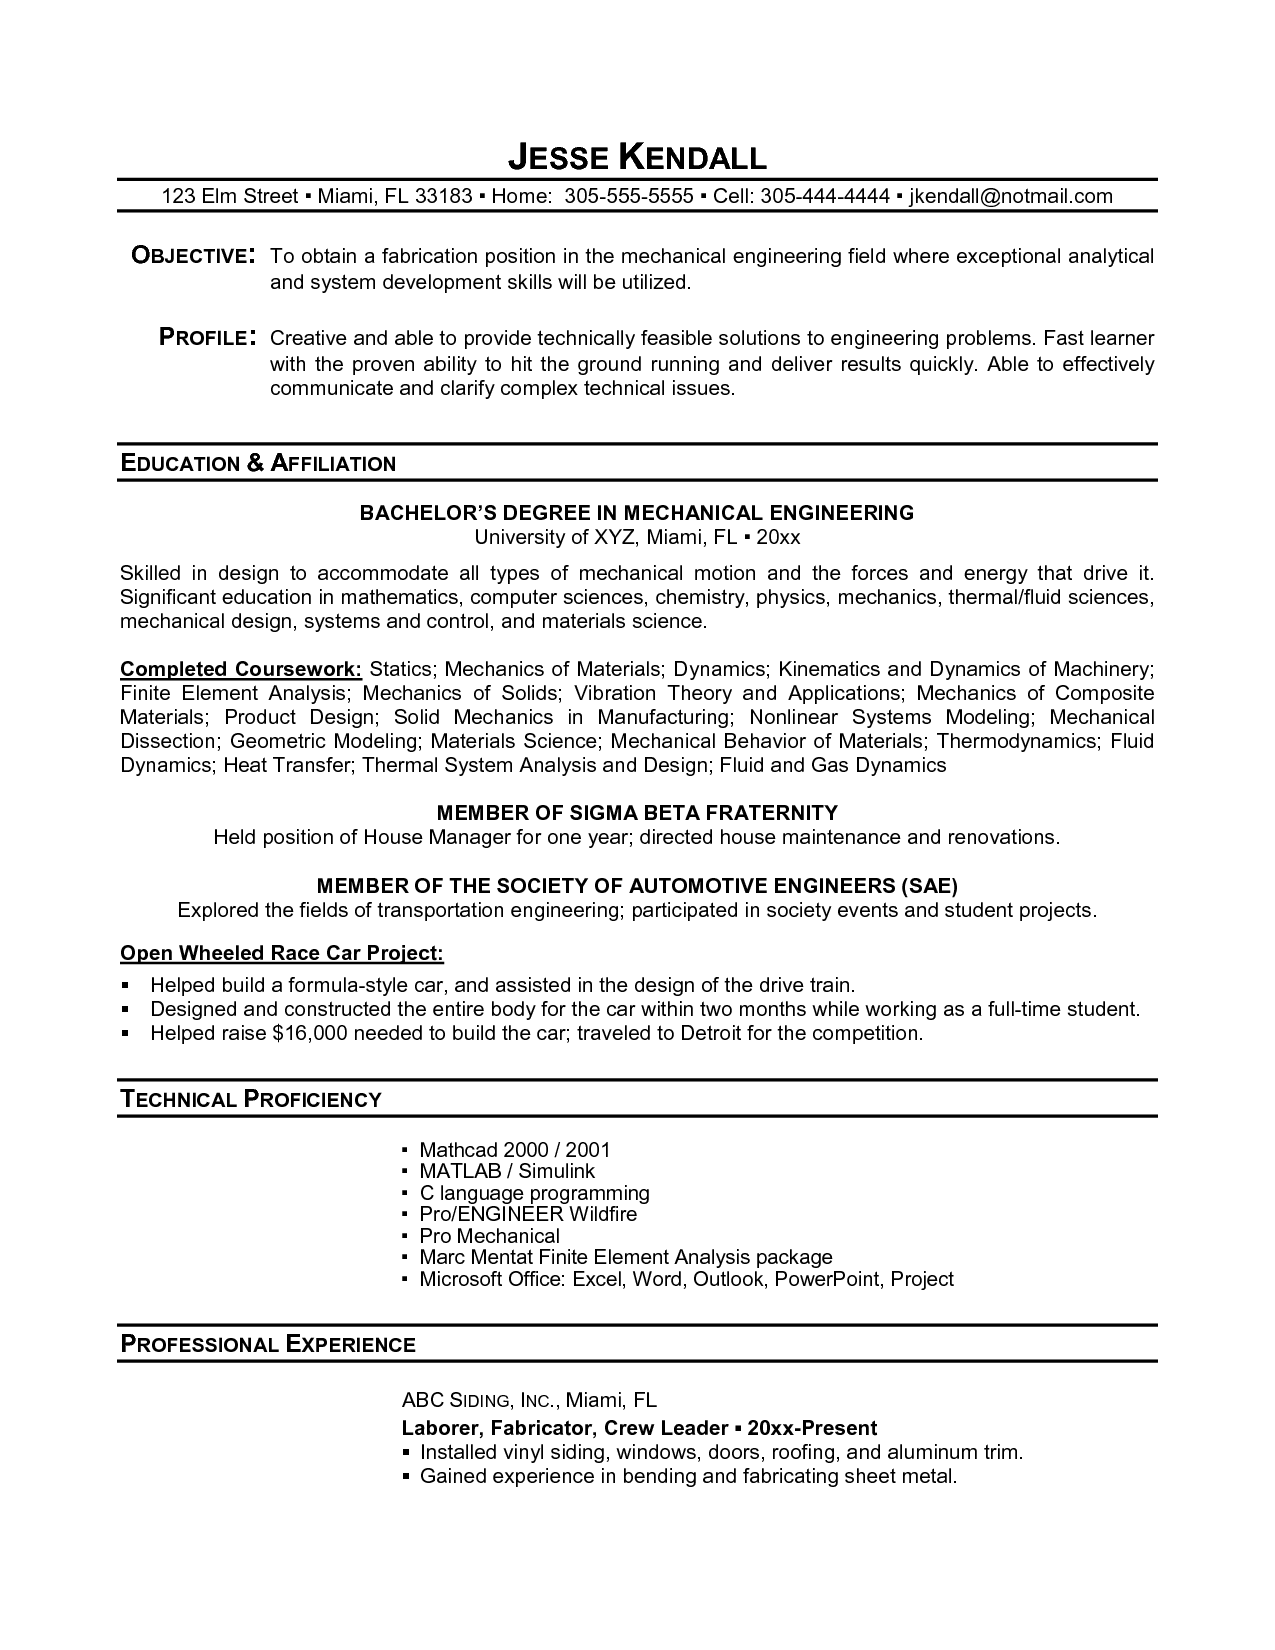 Resume Samples For Students Resume Examples Student Examples Collge High School Resume .